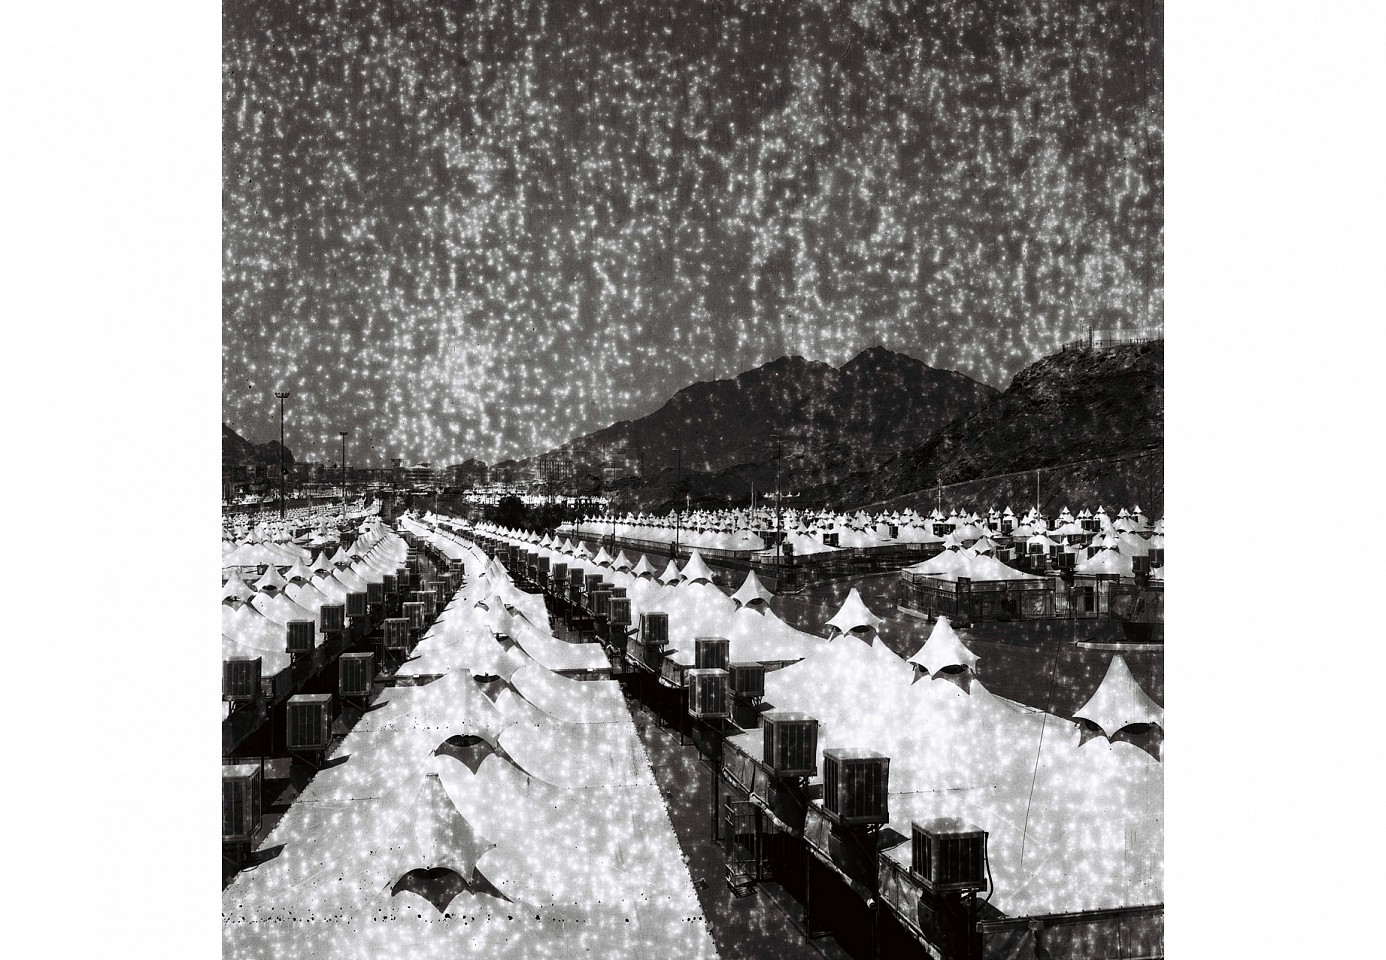 "<p><span class=""viewer-caption-artist"">Ziad Antar</span></p> <p><span class=""viewer-caption-title""><i>Hajj Tents</i></span>, <span class=""viewer-caption-year"">2012</span></p> <p><span class=""viewer-caption-media"">Silver print mounted on dibond</span></p> <p><span class=""viewer-caption-dimensions"">120 x 120 cm (47 3/16 x 47 3/16 in.)</span></p> <p><span class=""viewer-caption-description"">Edition of 5; From Liminal Resolutions</span></p> <p><span class=""viewer-caption-inventory"">ZIA0057</span></p> <p><span class=""viewer-caption-aux""></span></p>"